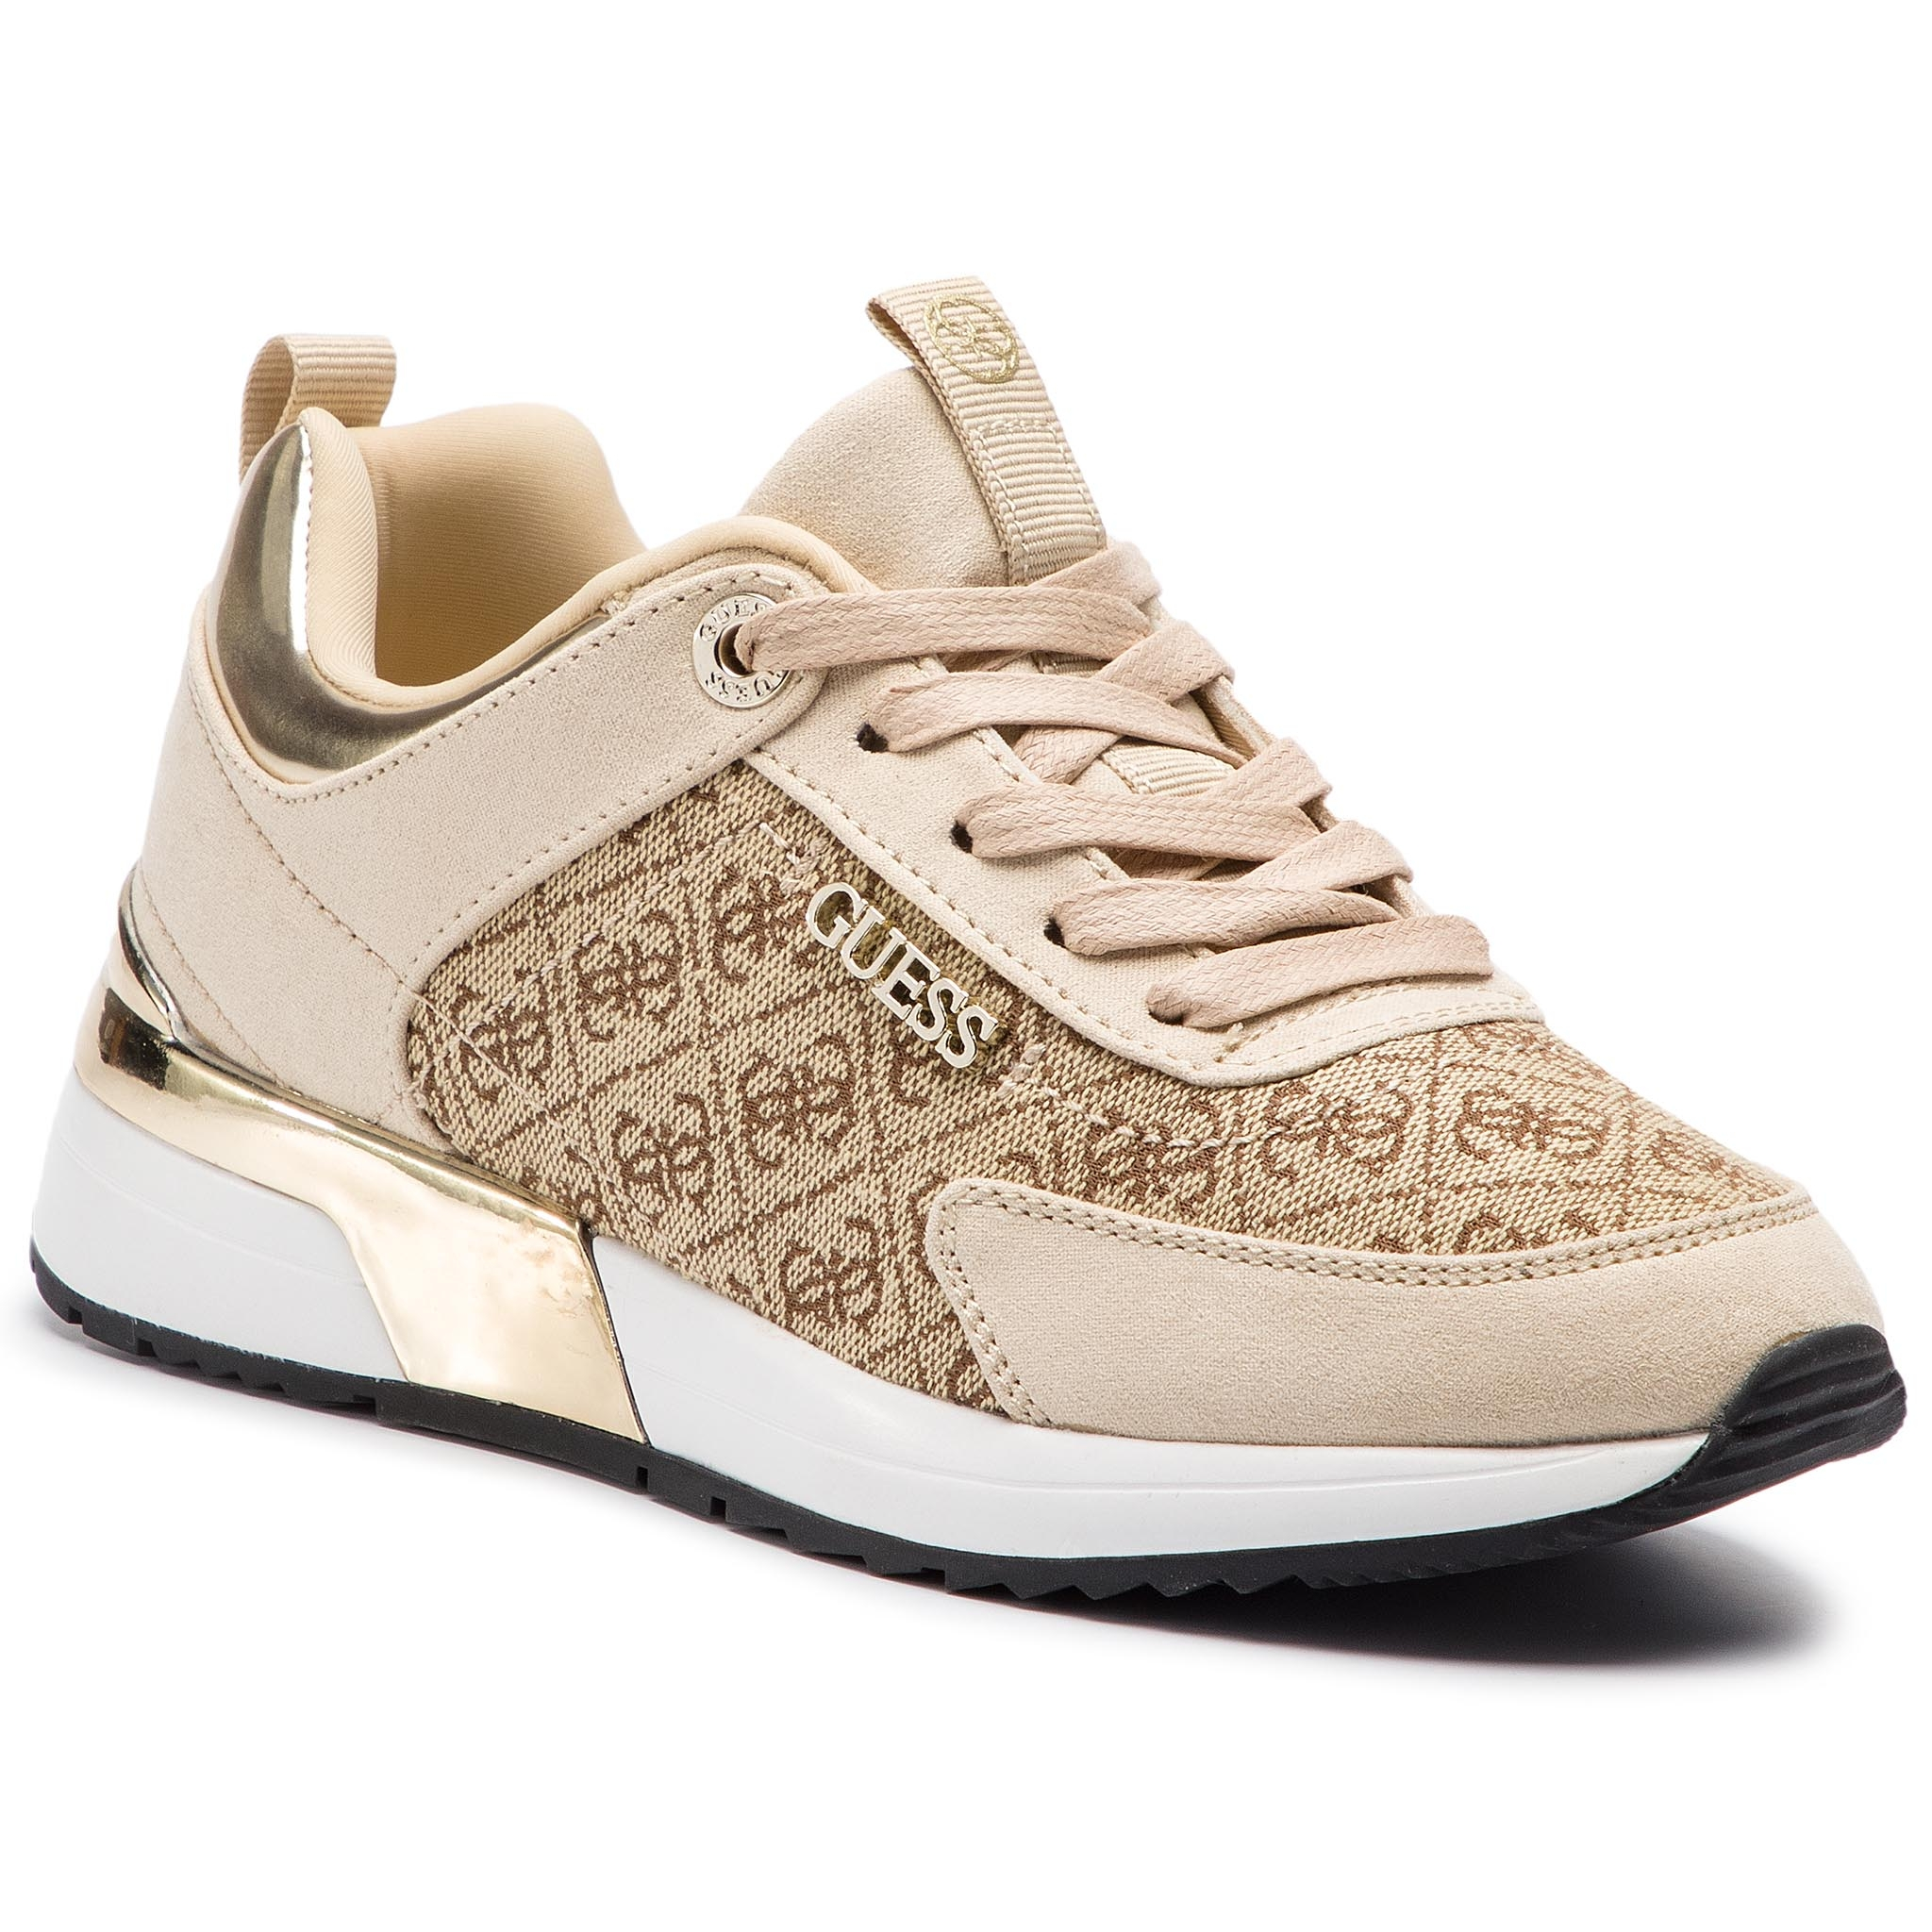 Sneakers GUESS - Marlyn2 FL5MR2 FAL12 BEIBR